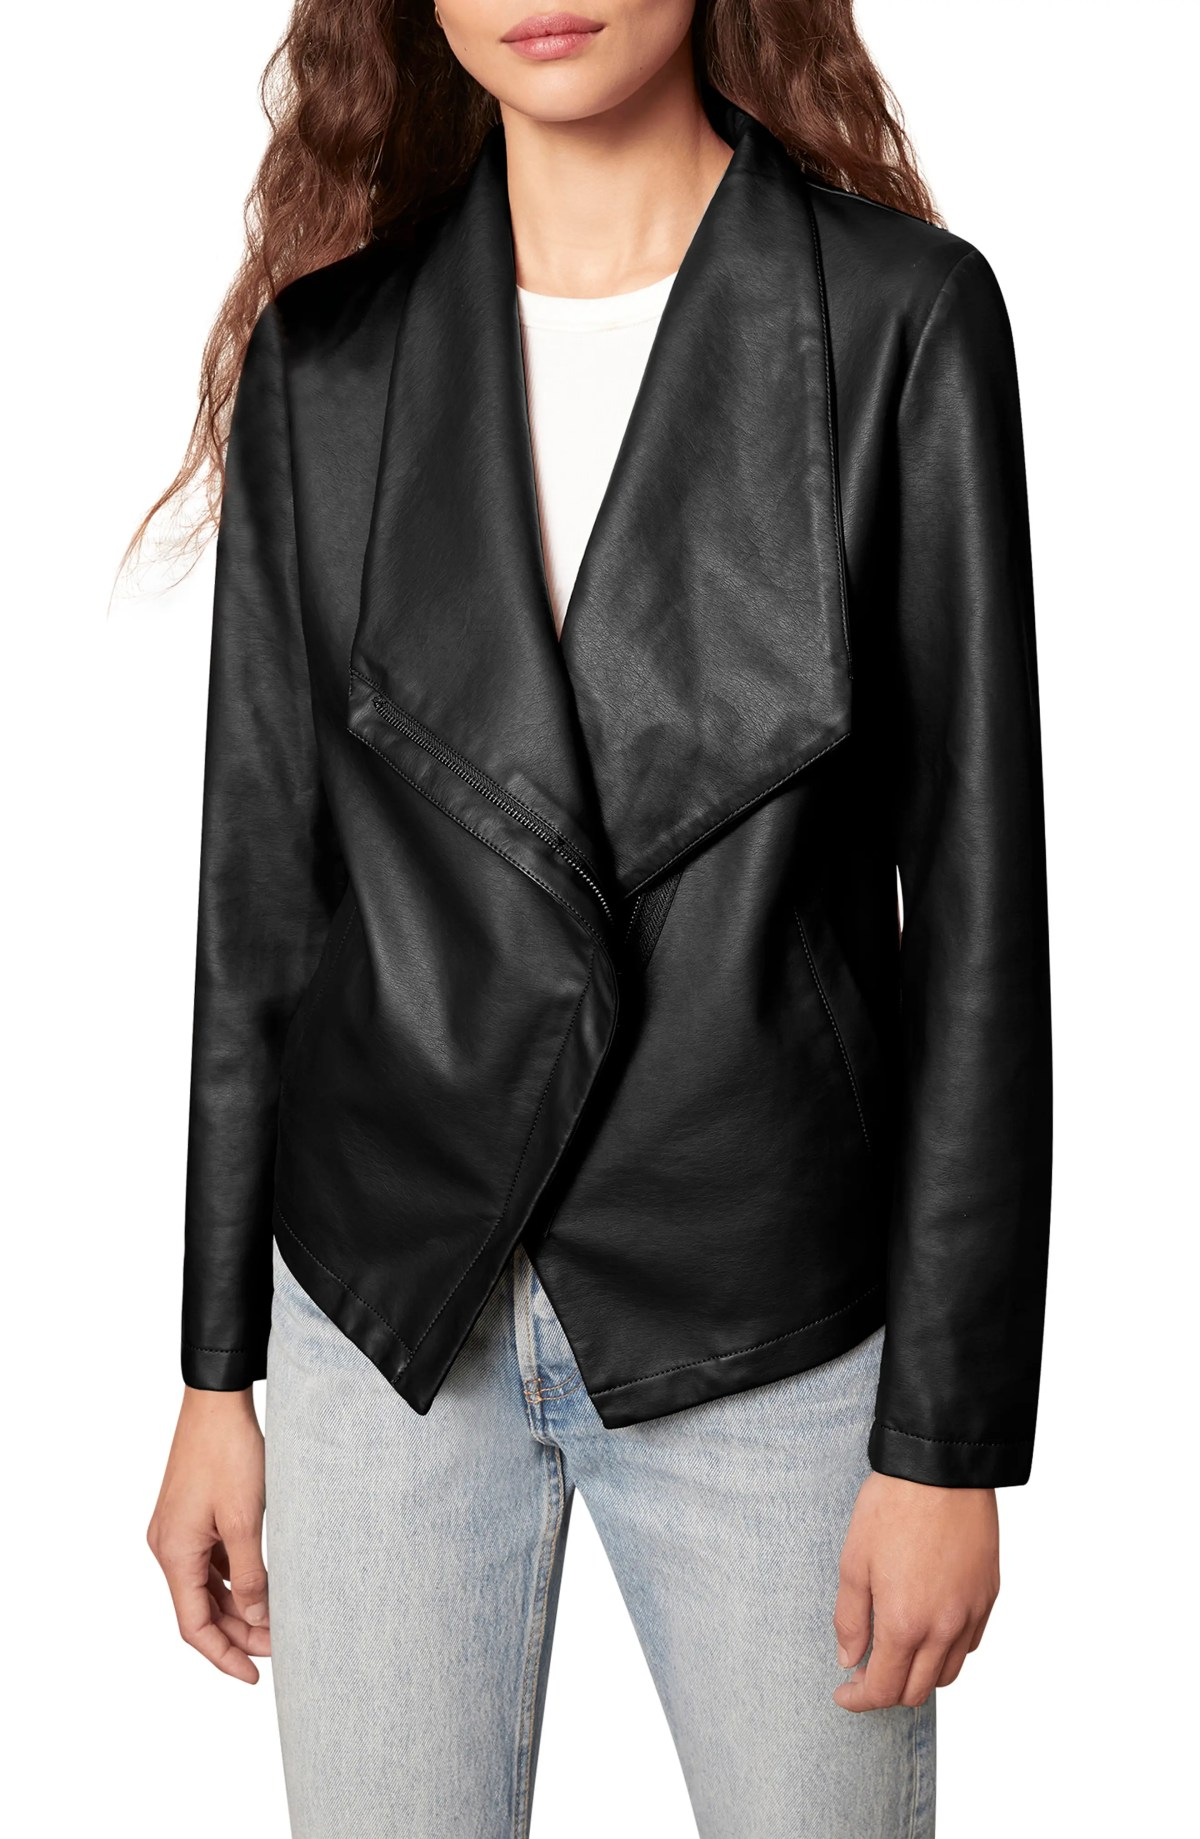 BB DAKOTA Faux Leather Jacket, Main, color, BLACK